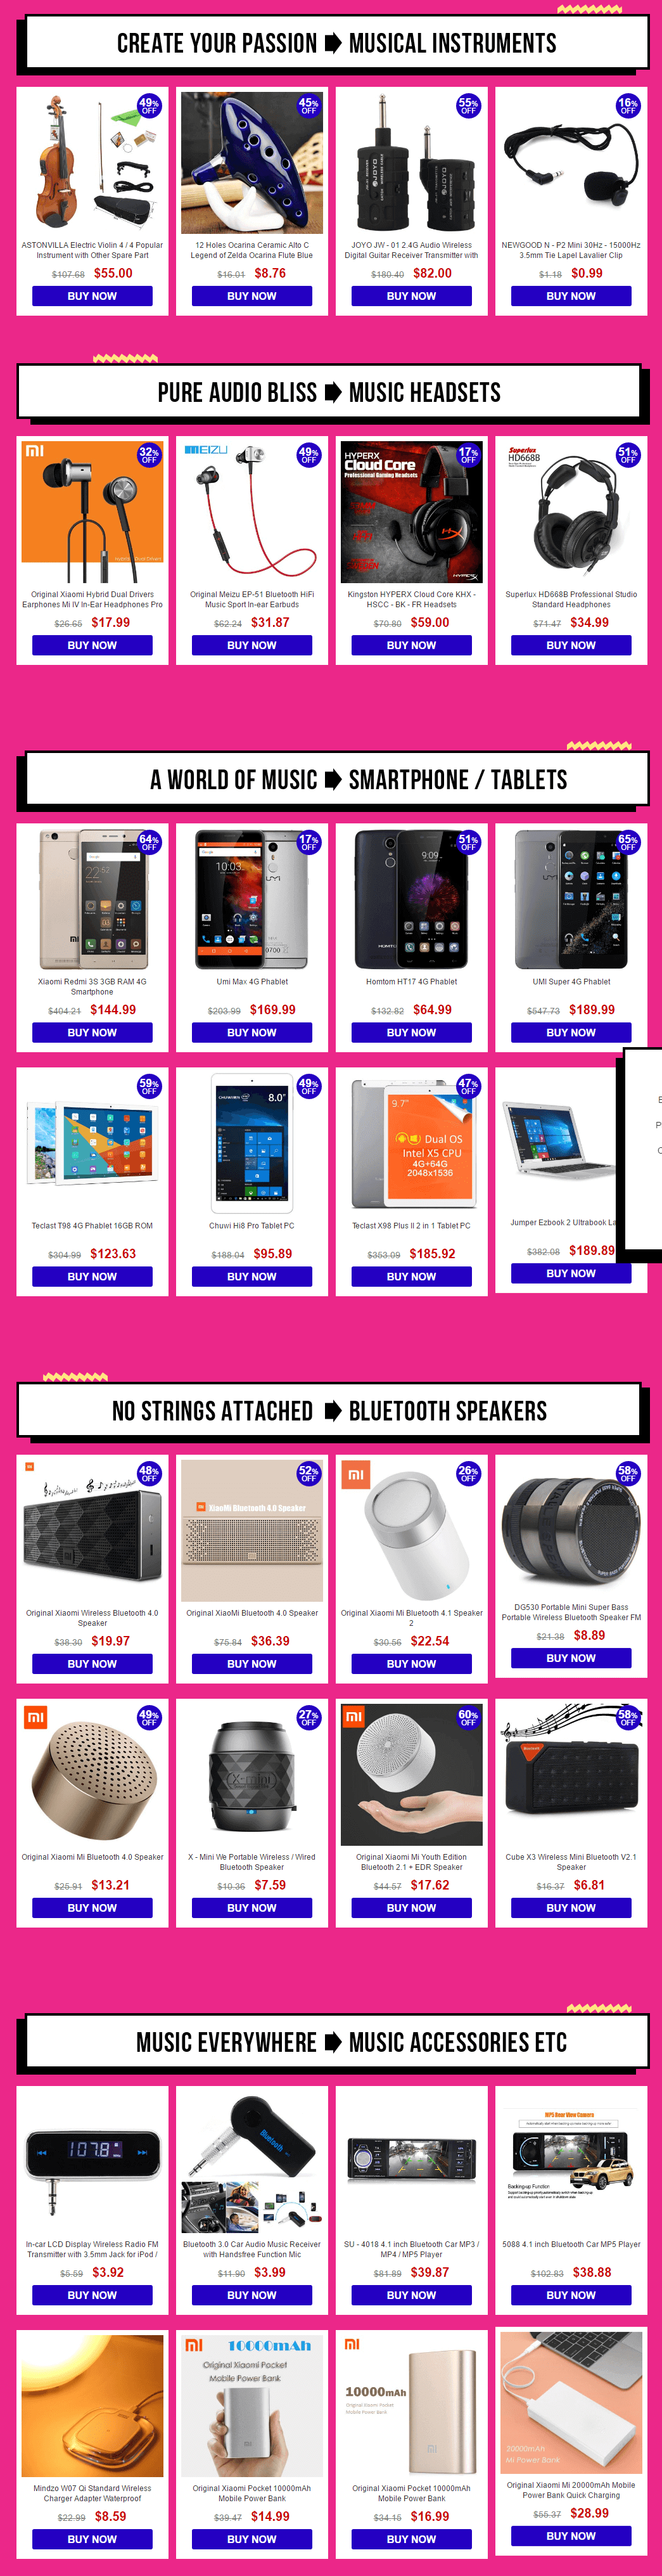 international-music-festival-tech-sale-prducts-list